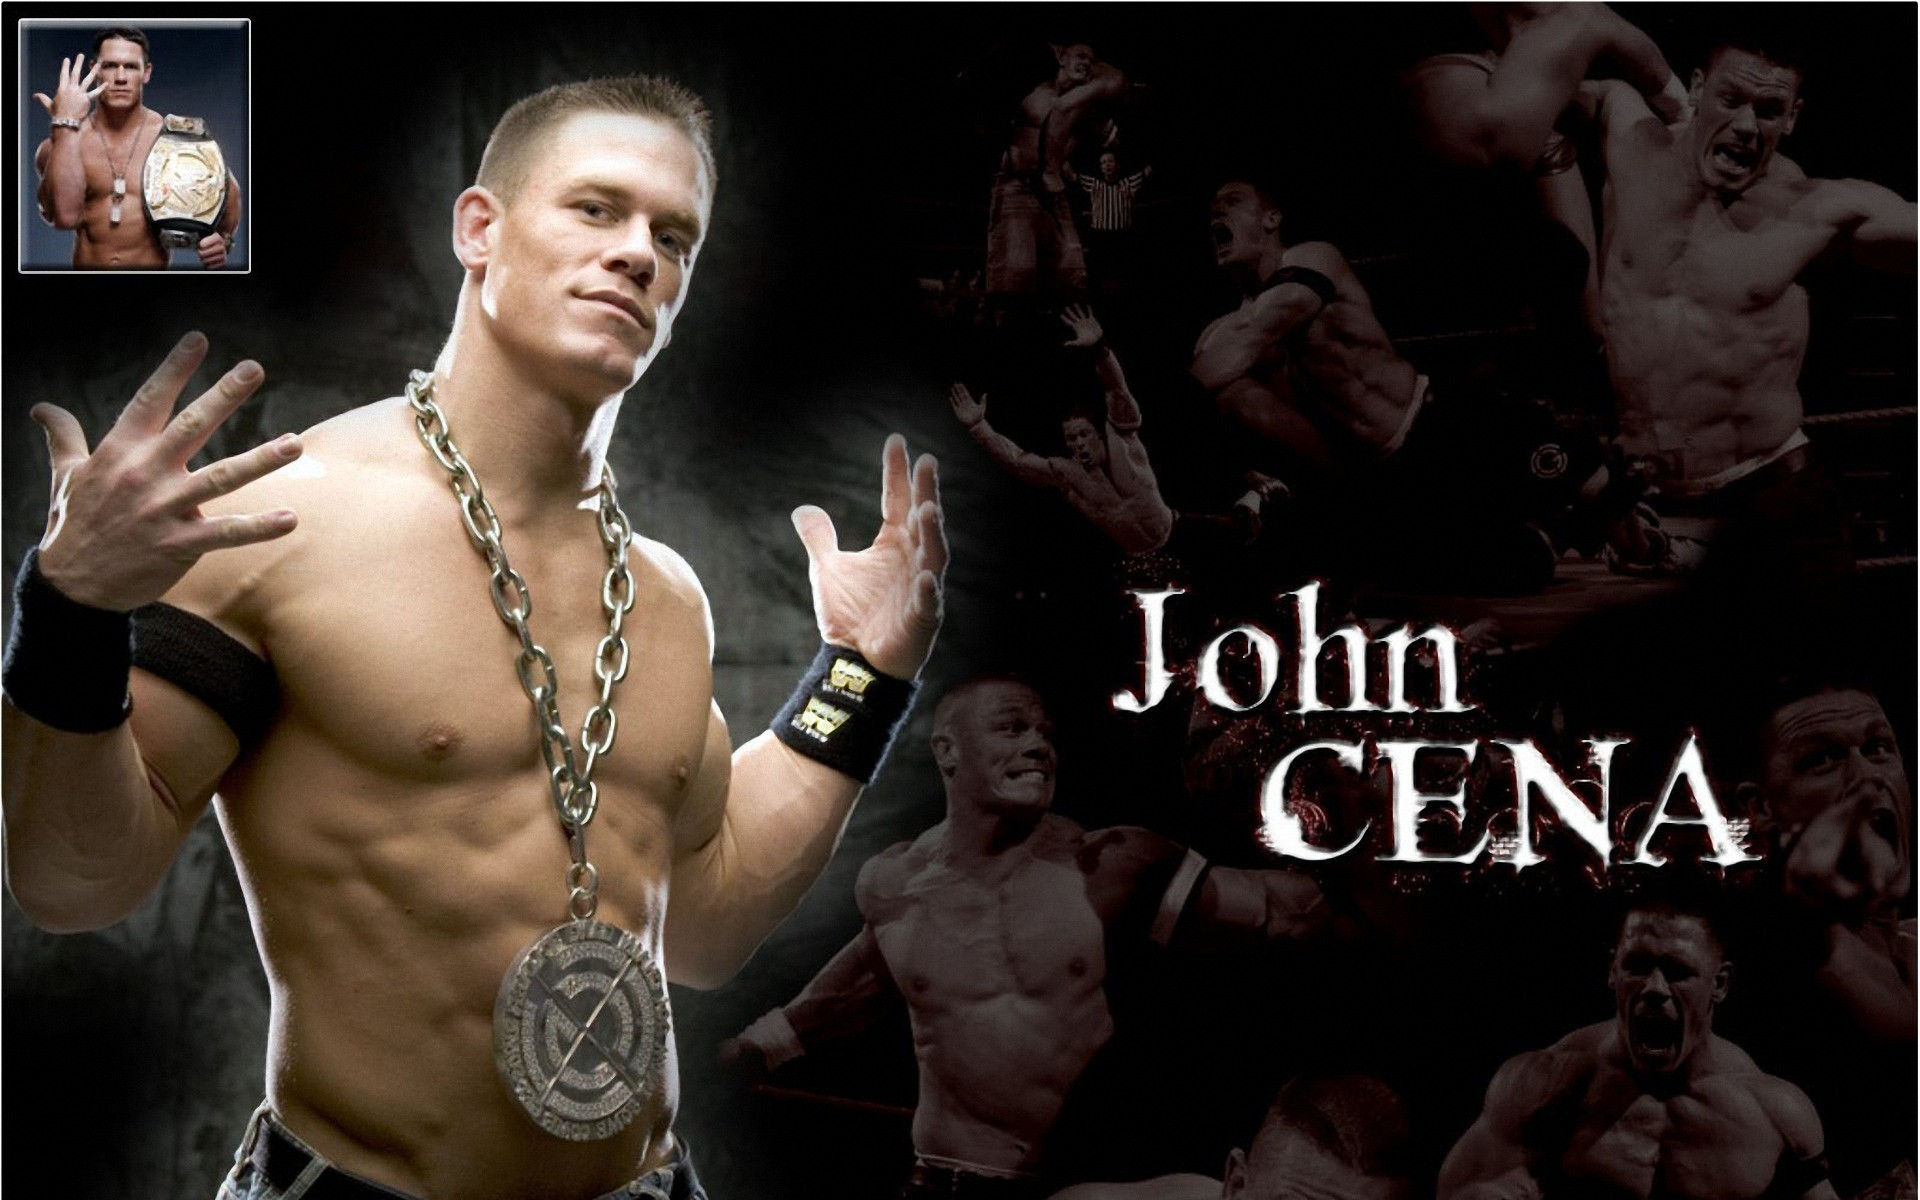 1920x1200 John Cena Body Builders Wallpaper